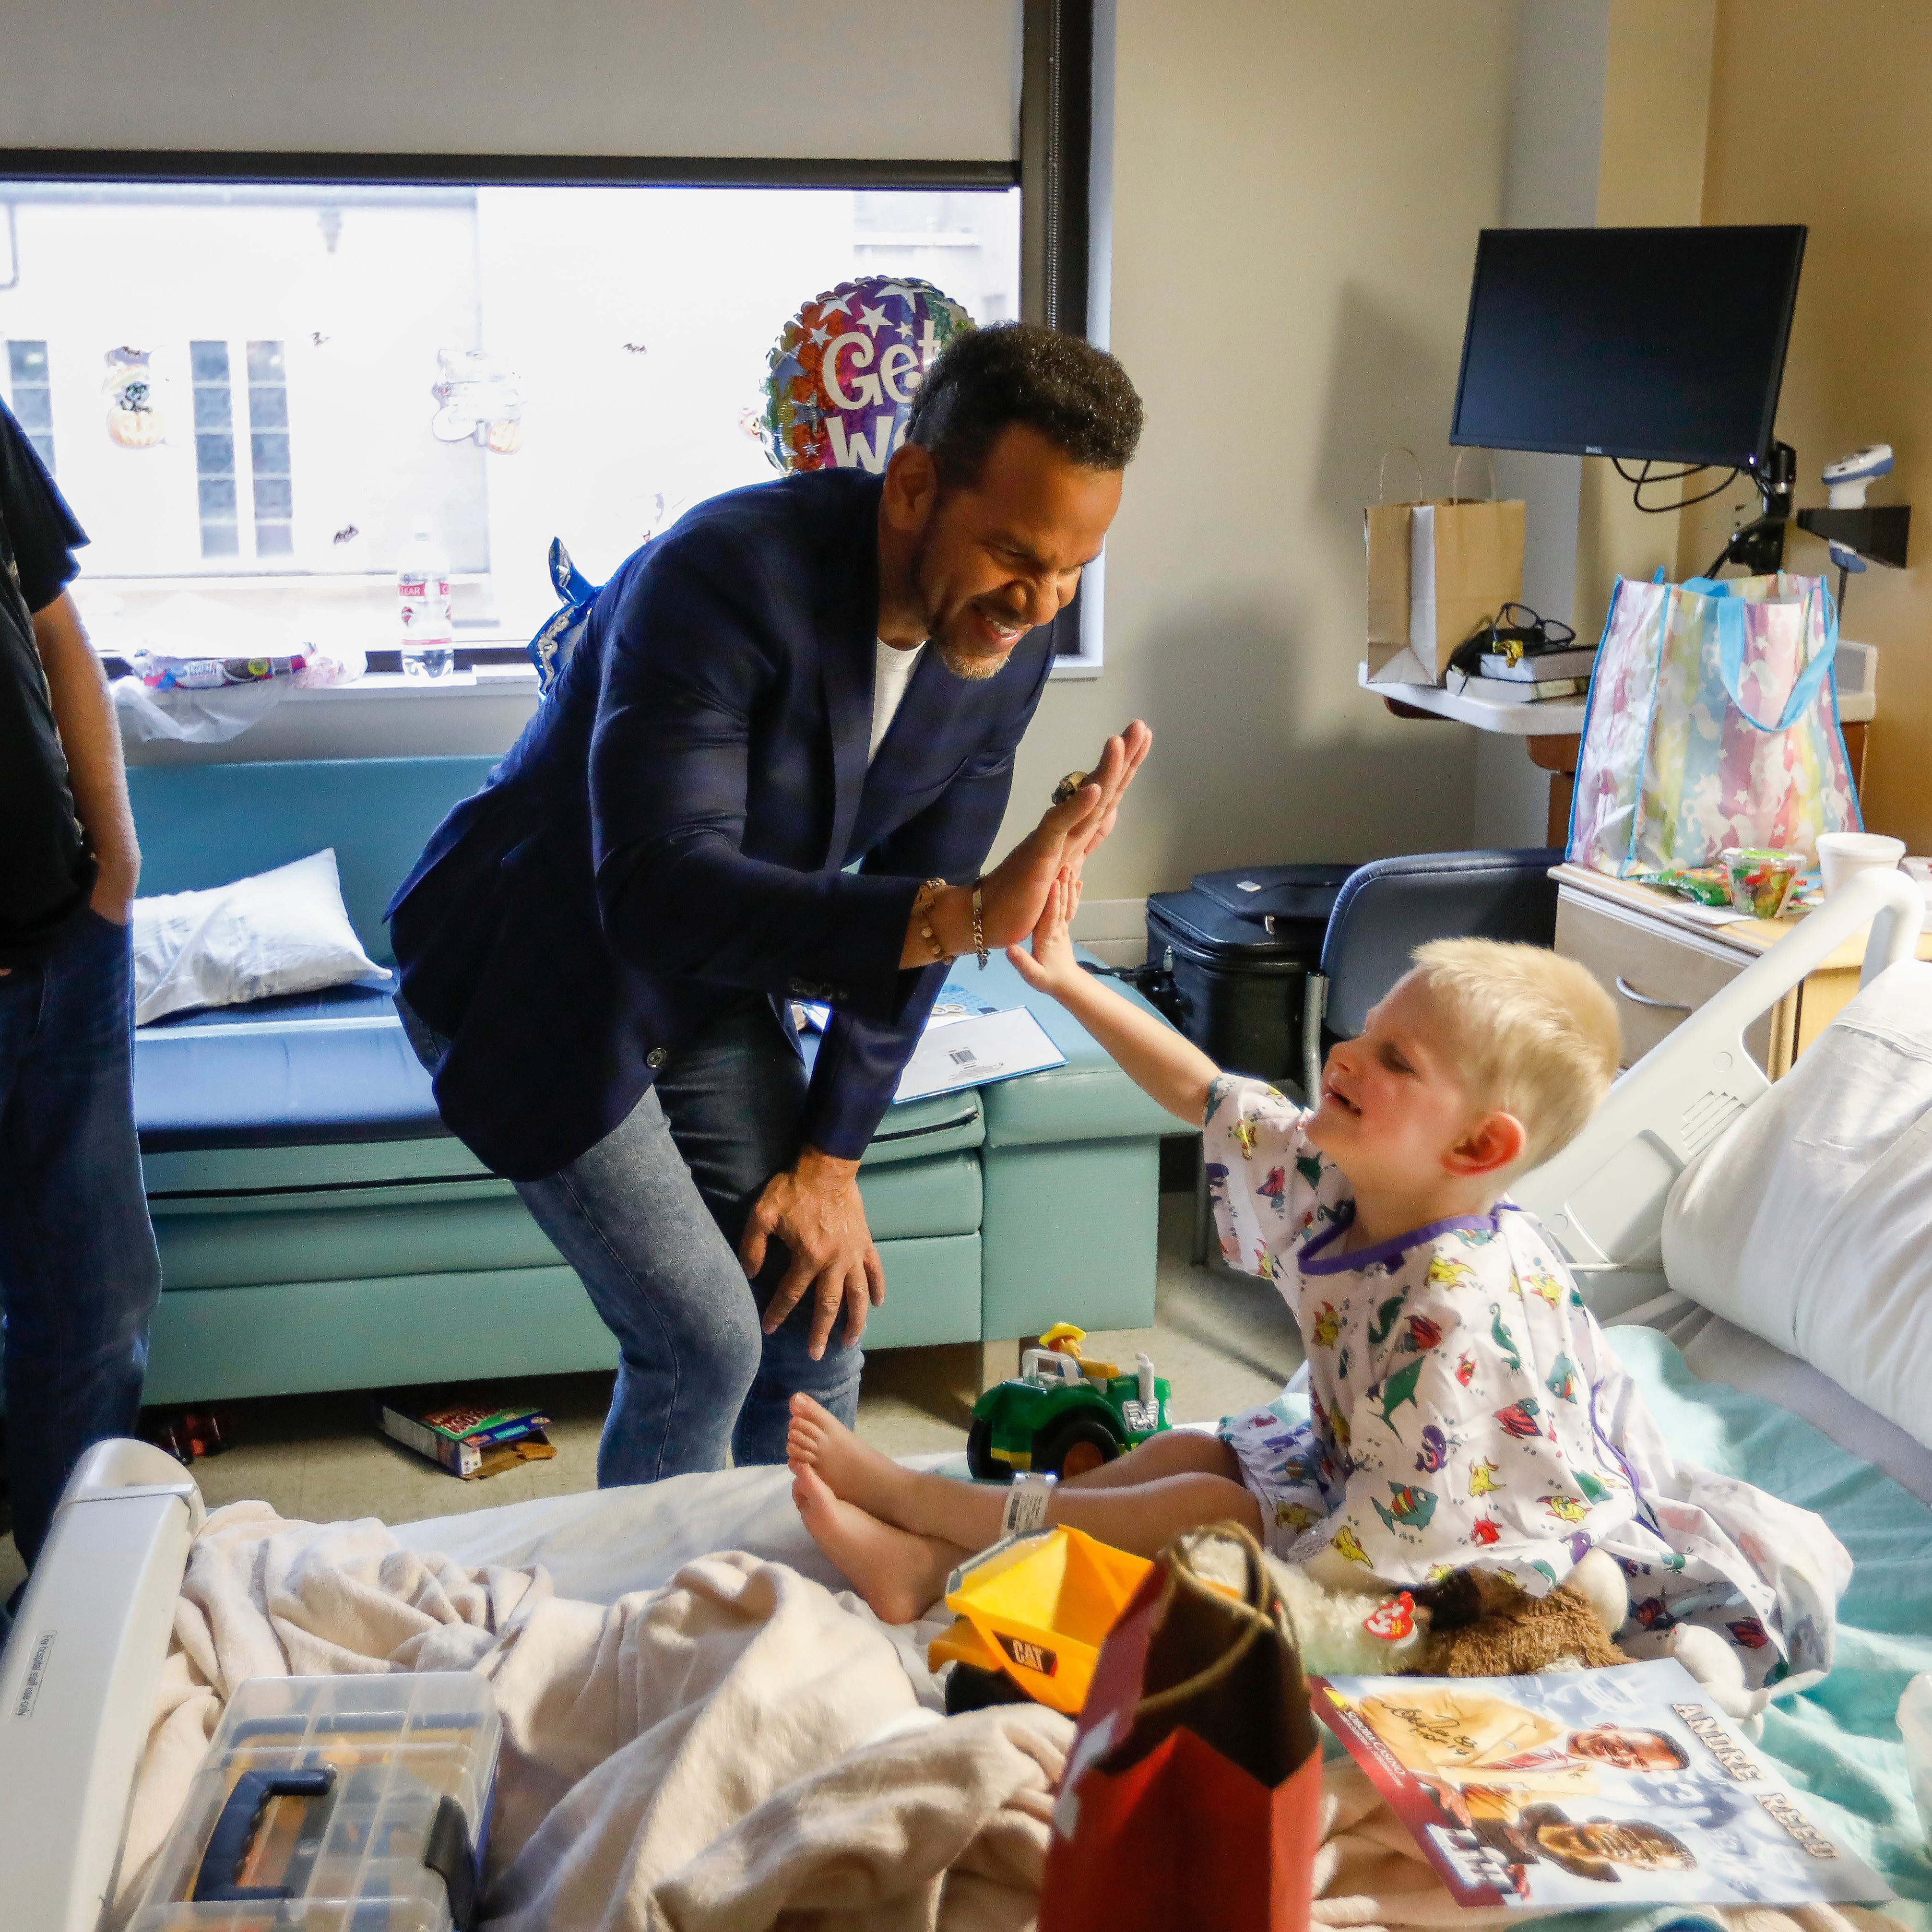 NFL Hall of Fame wide receiver Andre Reed high-fives Elijah Miller, 4, of Purdy, who was in the hospital with encephalopathy, at Mercy Hospital on Wednesday, Oct. 31, 2018.